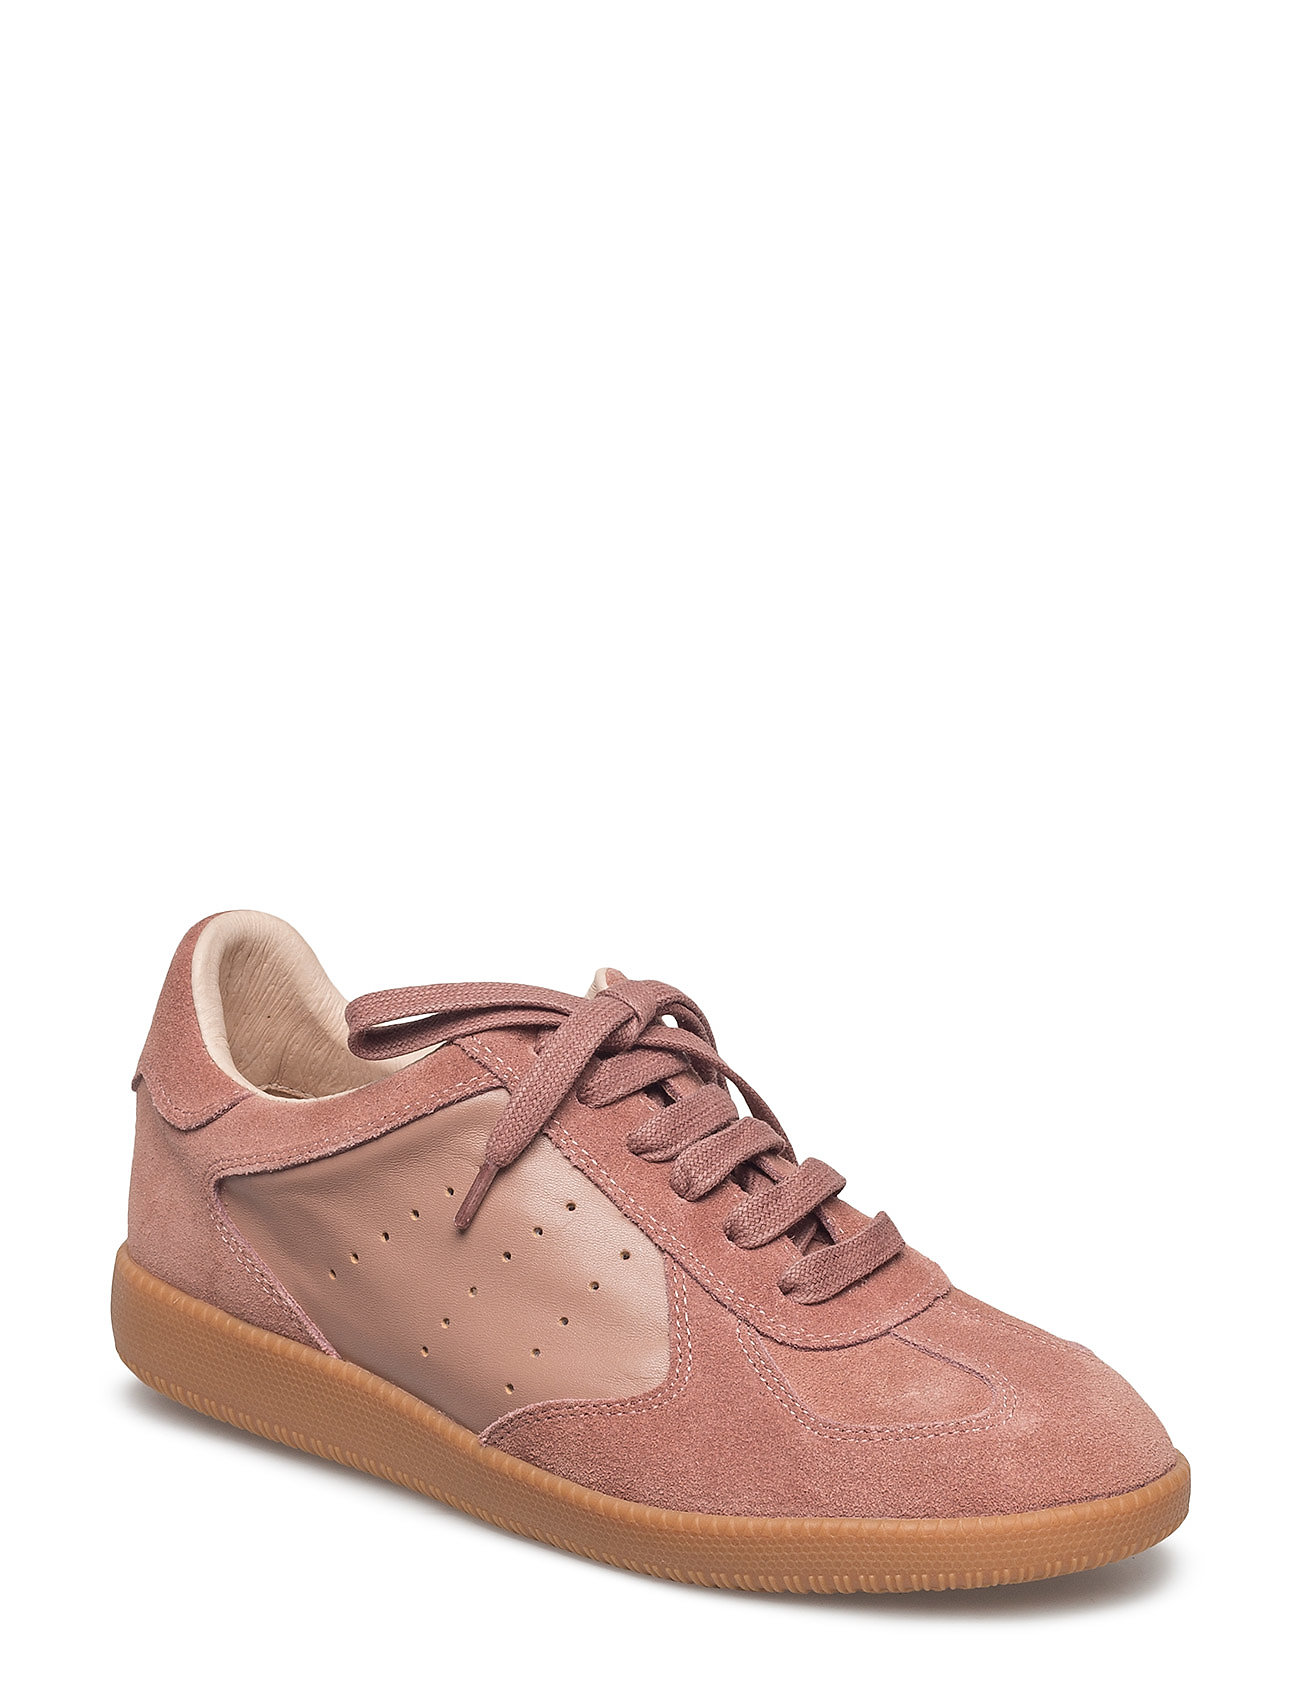 Image of Li Lace Up Low-top Sneakers Lyserød Shoe The Bear (3040300031)